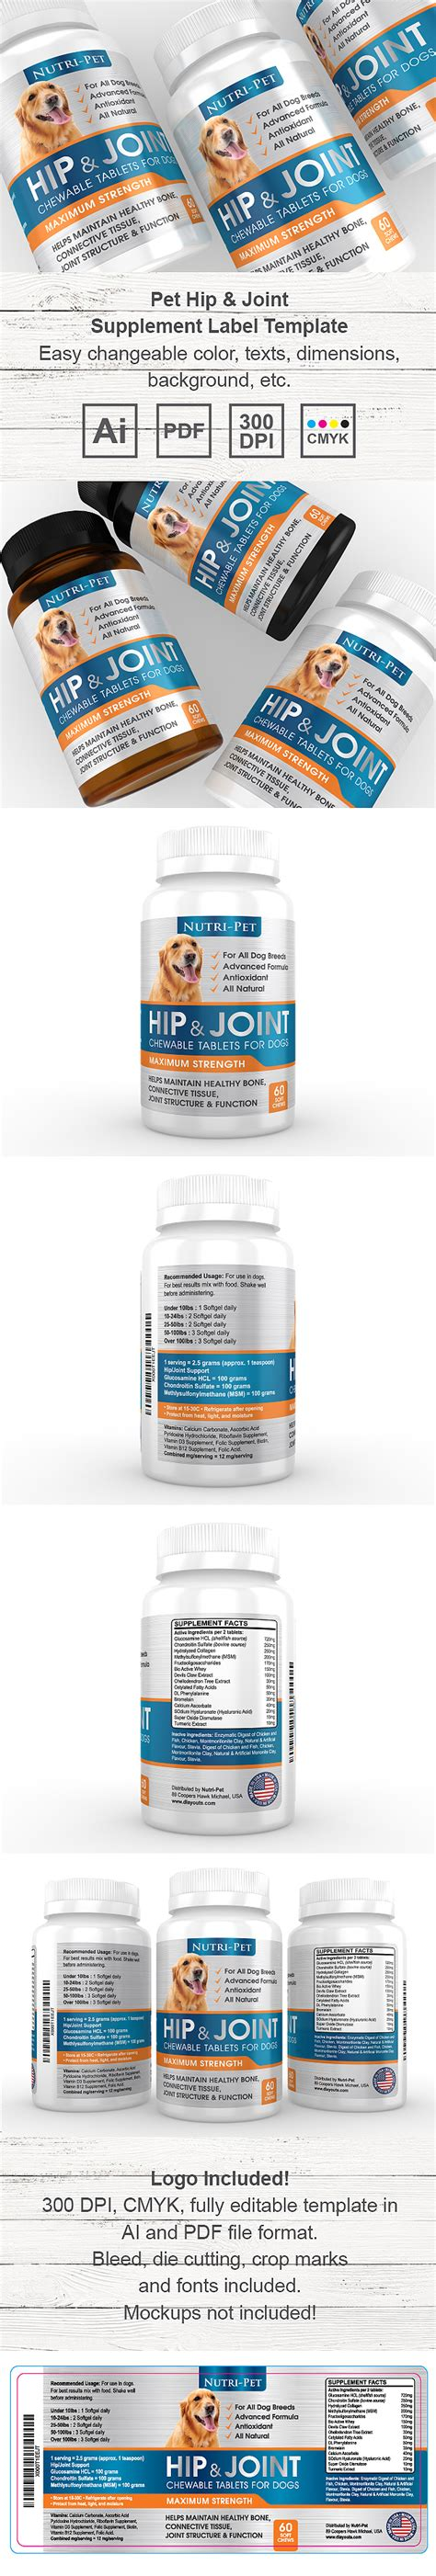 dietary supplement label template pet hip joint supplement label template